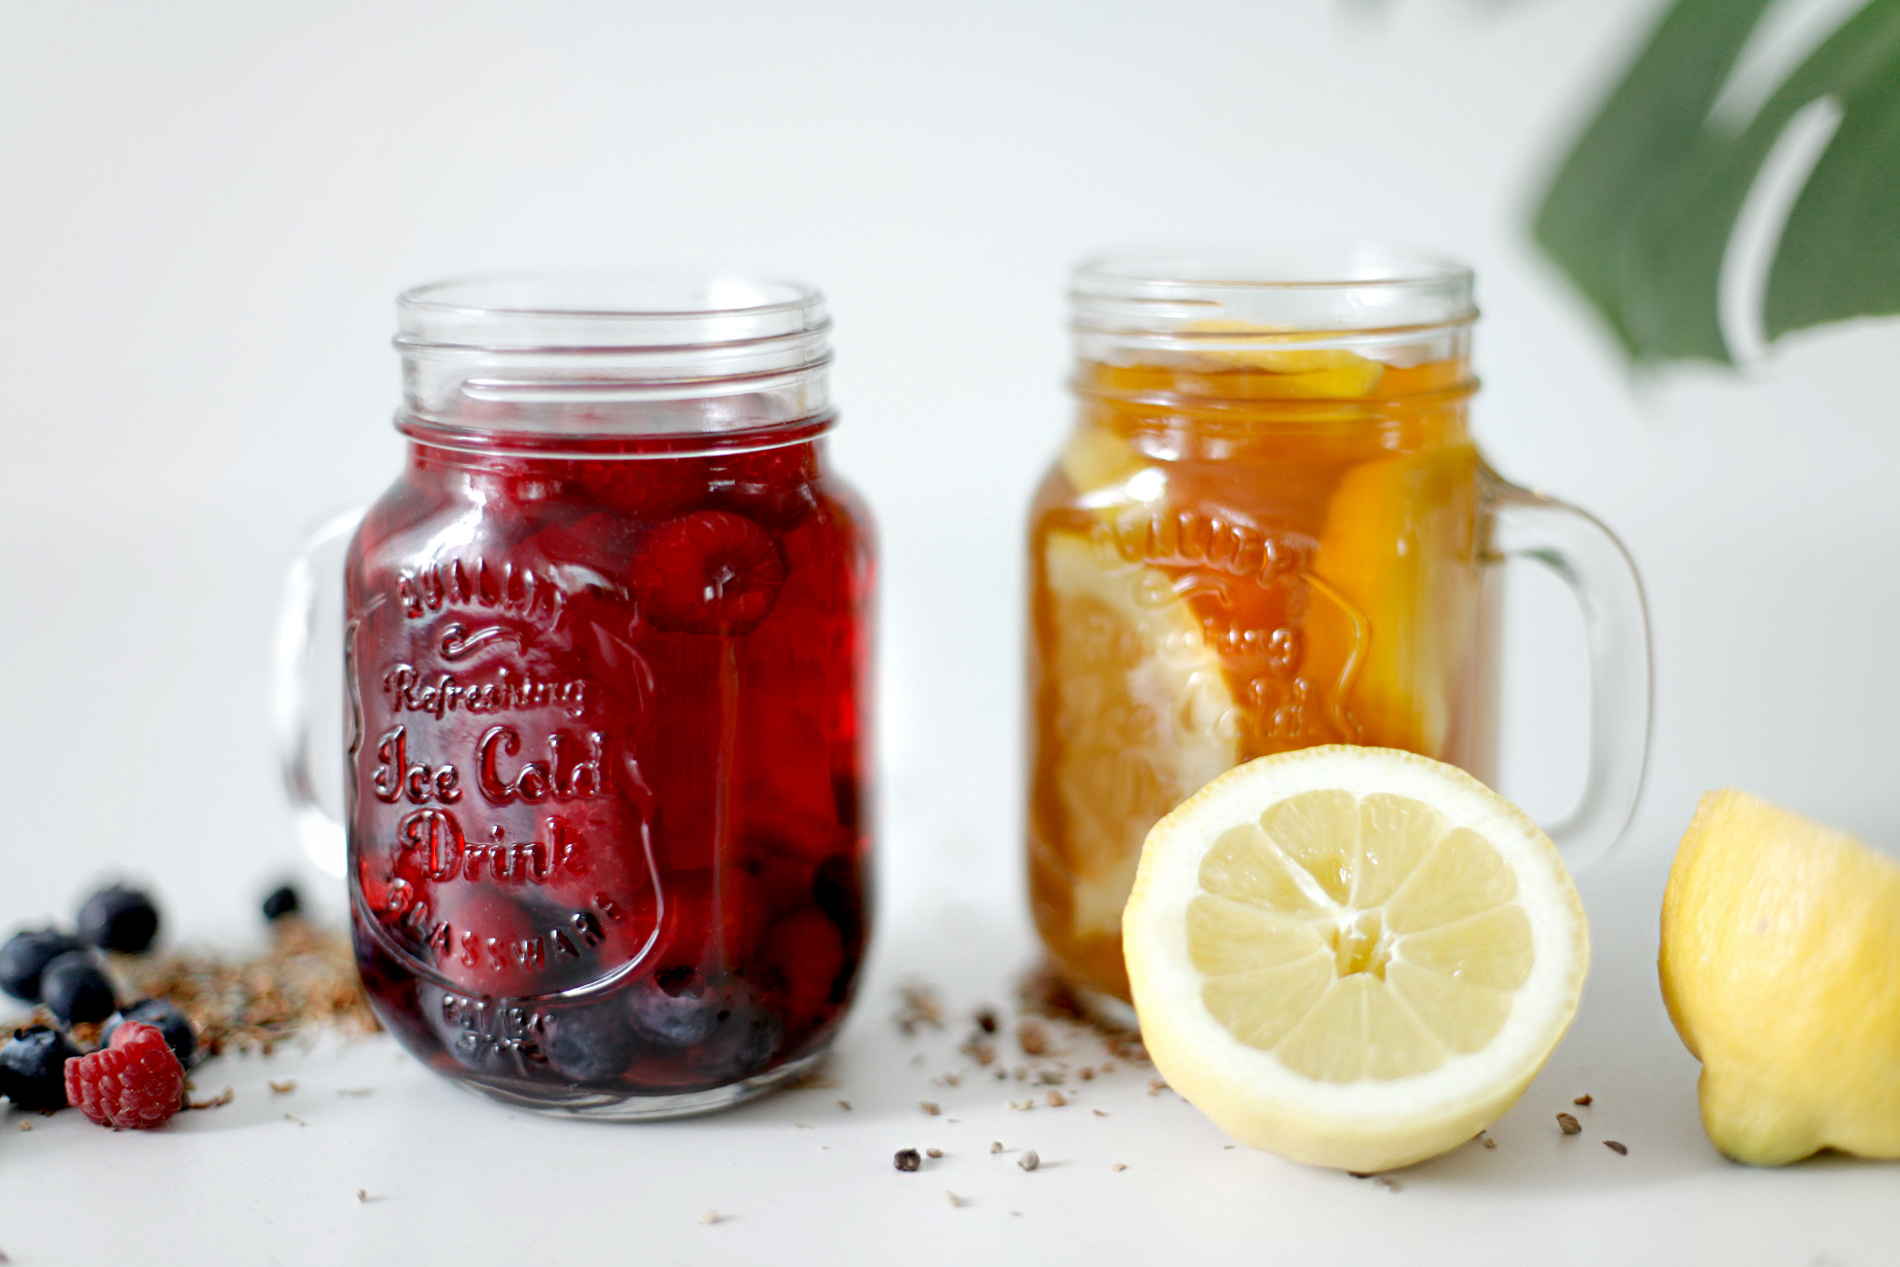 ice tea home made lemon fruit berry red ice summertime drink drinks healthy life living detox fresh water selfmade healthy good fitness fresh hot nice cooking foodblog cats & dogs ricarda schernus fashionblogger germany 6